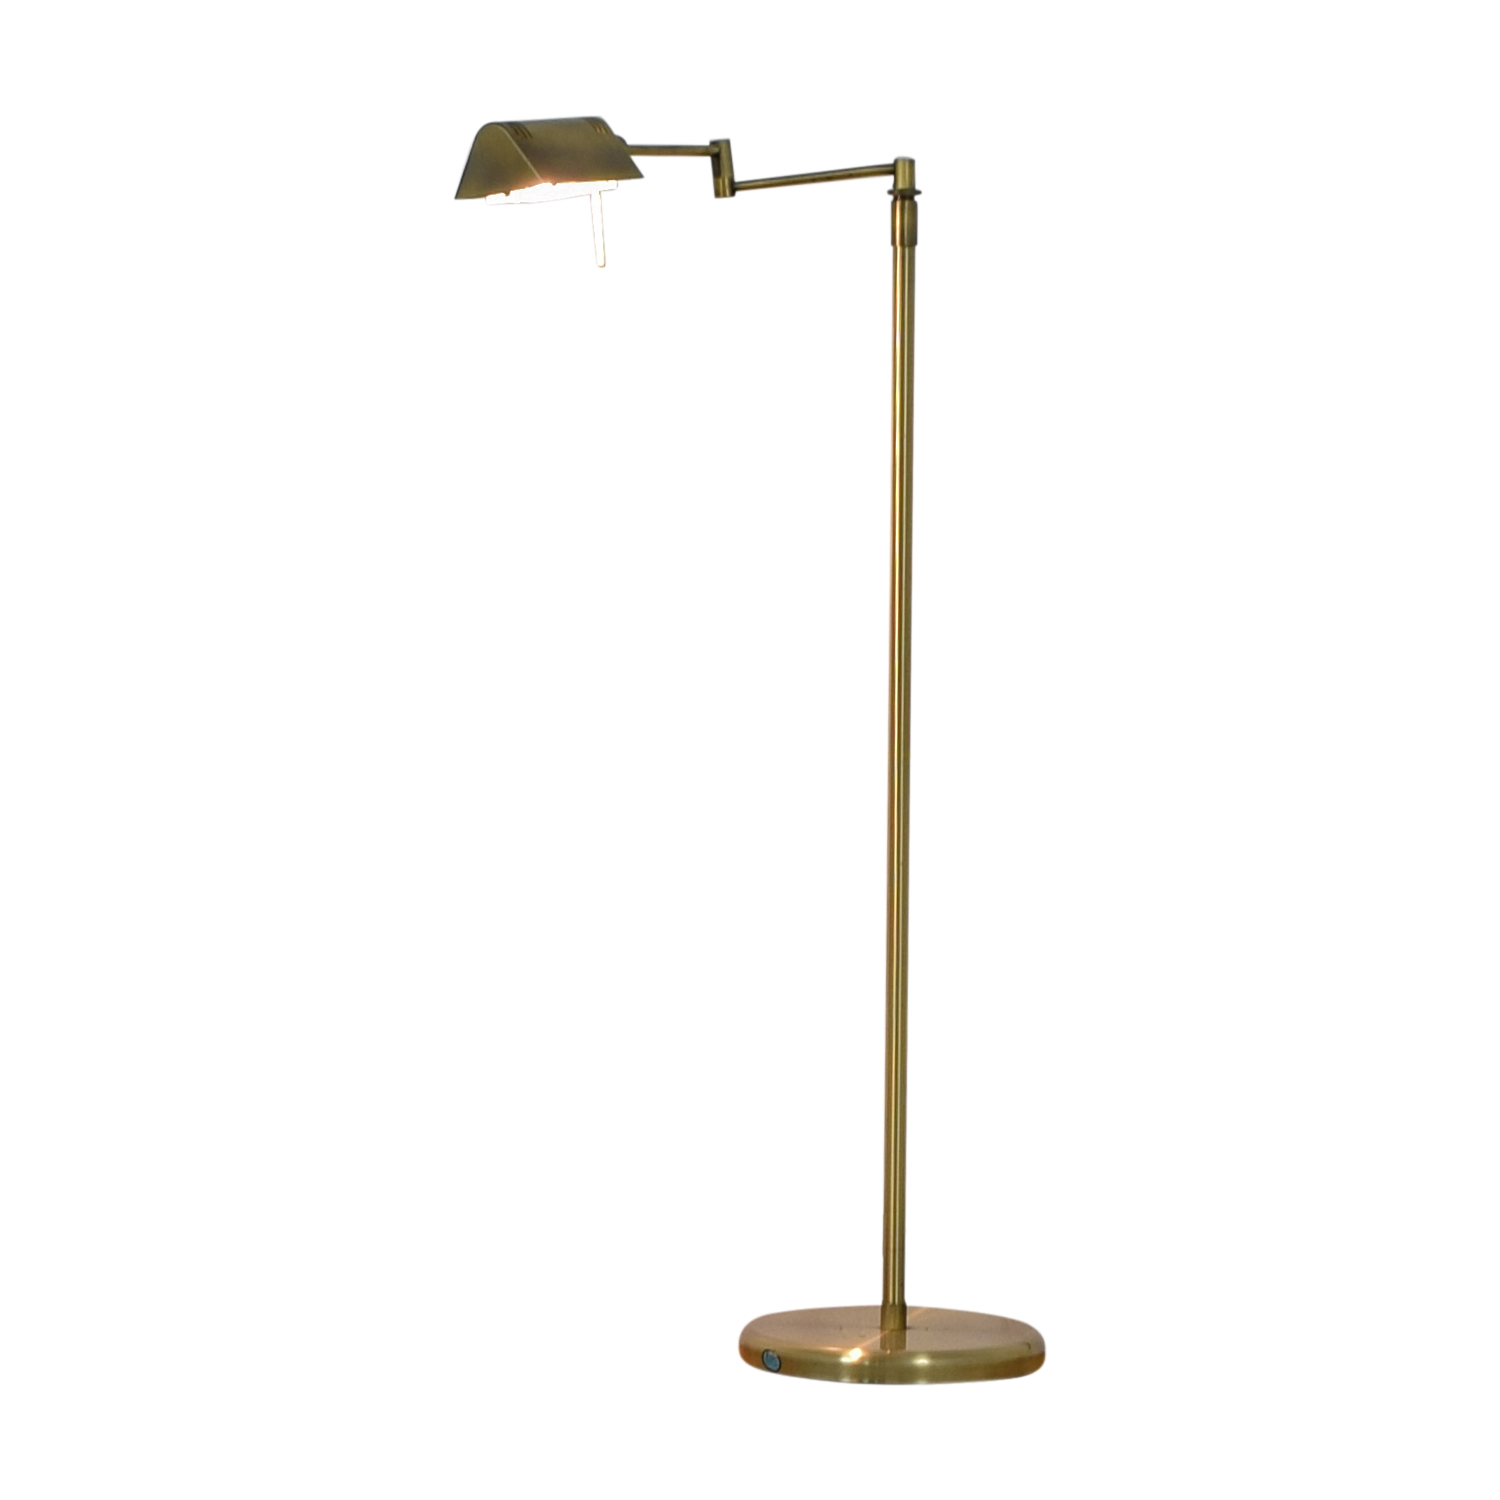 Marwill Lighting Collection Marwill Lighting Collection Antique Brass Swivel Floor Lamp for sale